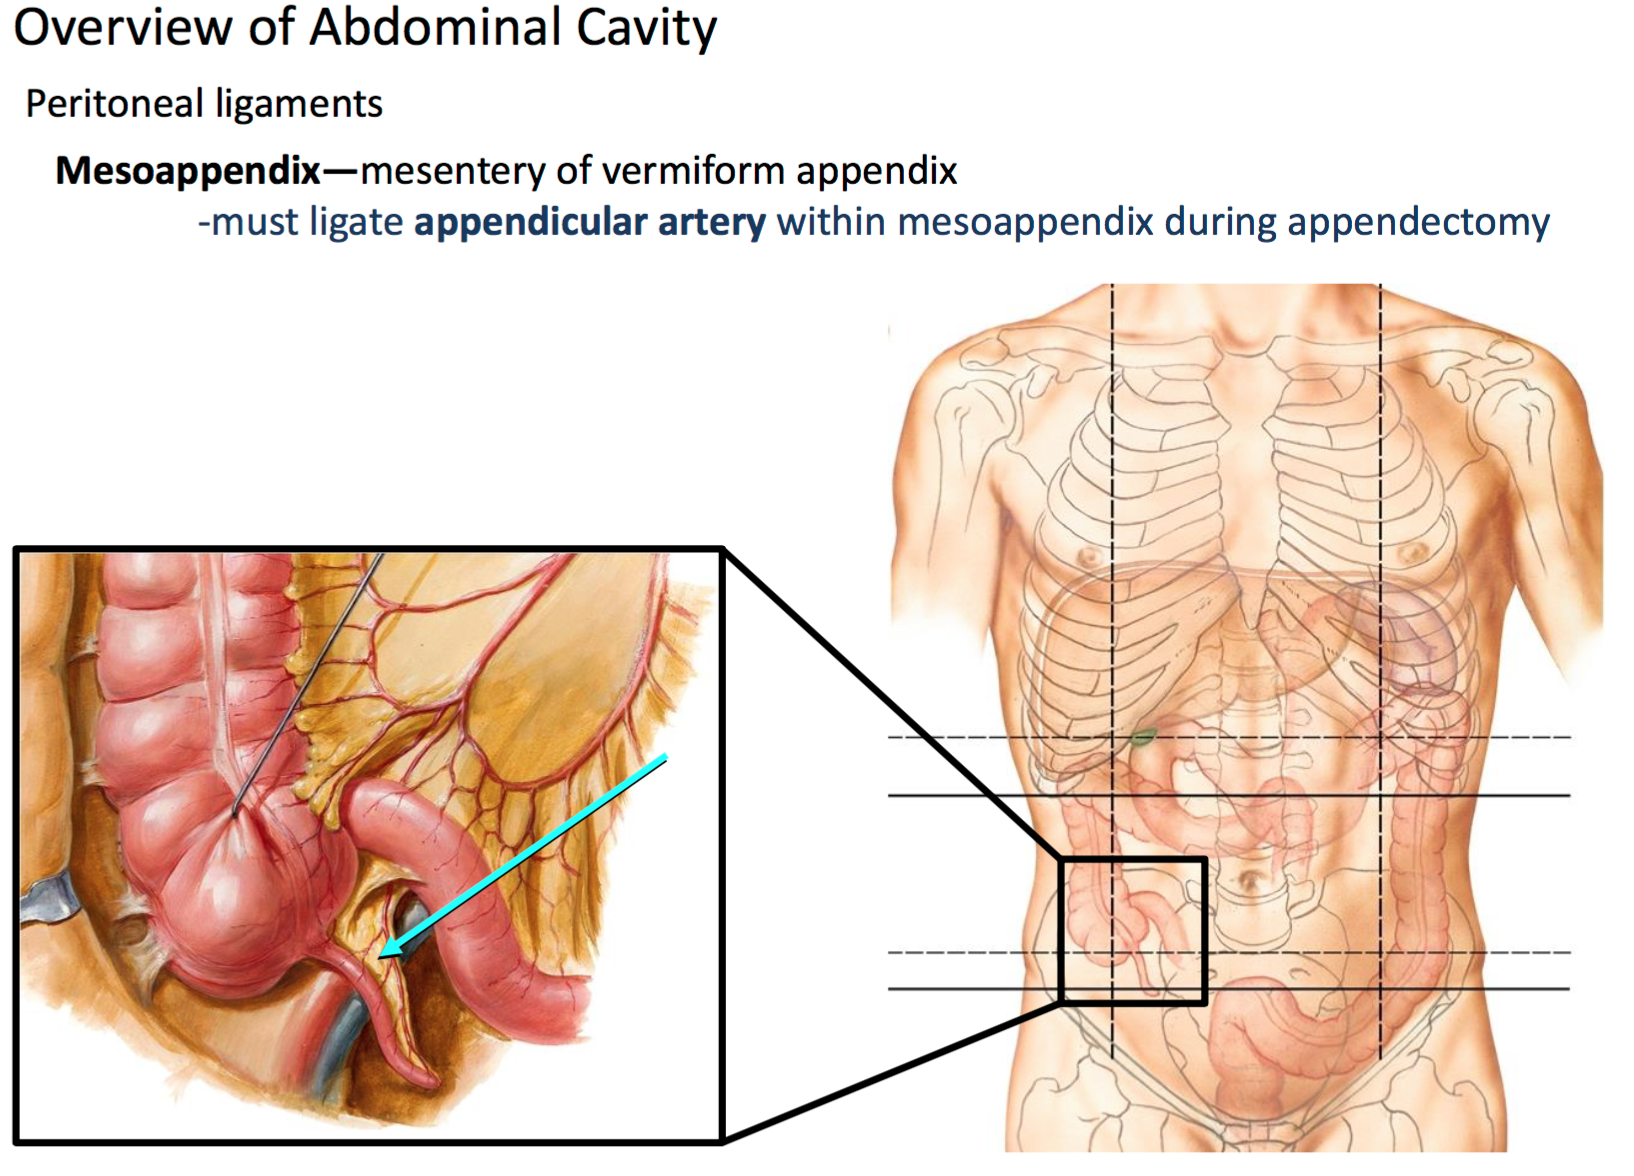 Anatomy G28b Orientation to Abdominal Cavity (anatomy) Flashcards ...